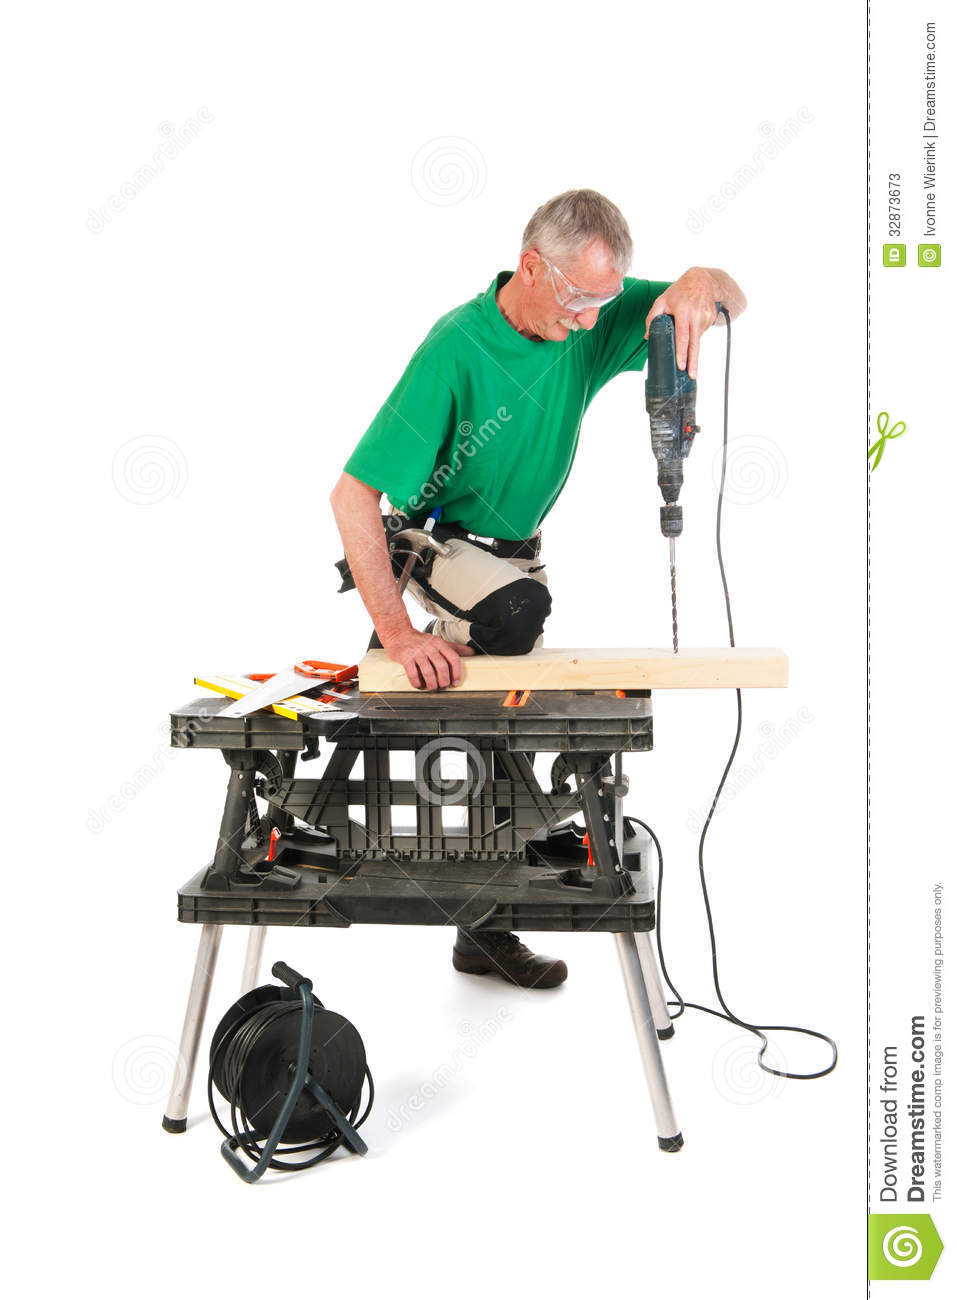 Construction Worker Drilling A Hole Stock Photos - Image ...  Construction Wo...